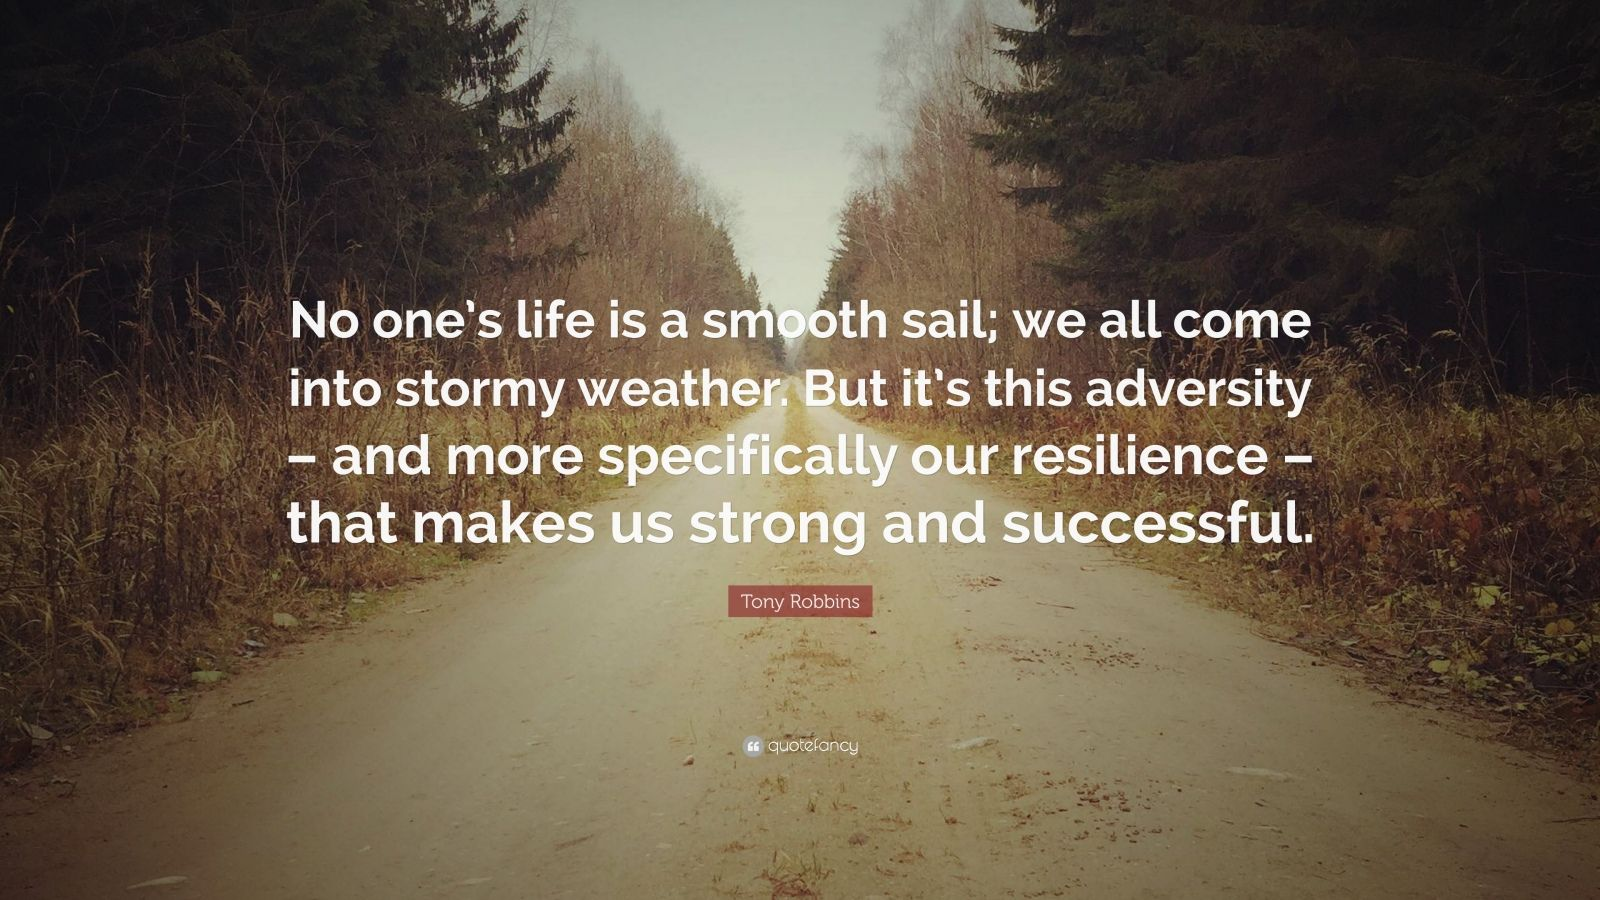 """Tony Robbins Quote: """"No one's life is a smooth sail; we all come into stormy weather. But it's this adversity – and more specifically our resilience – that makes us strong and successful."""""""